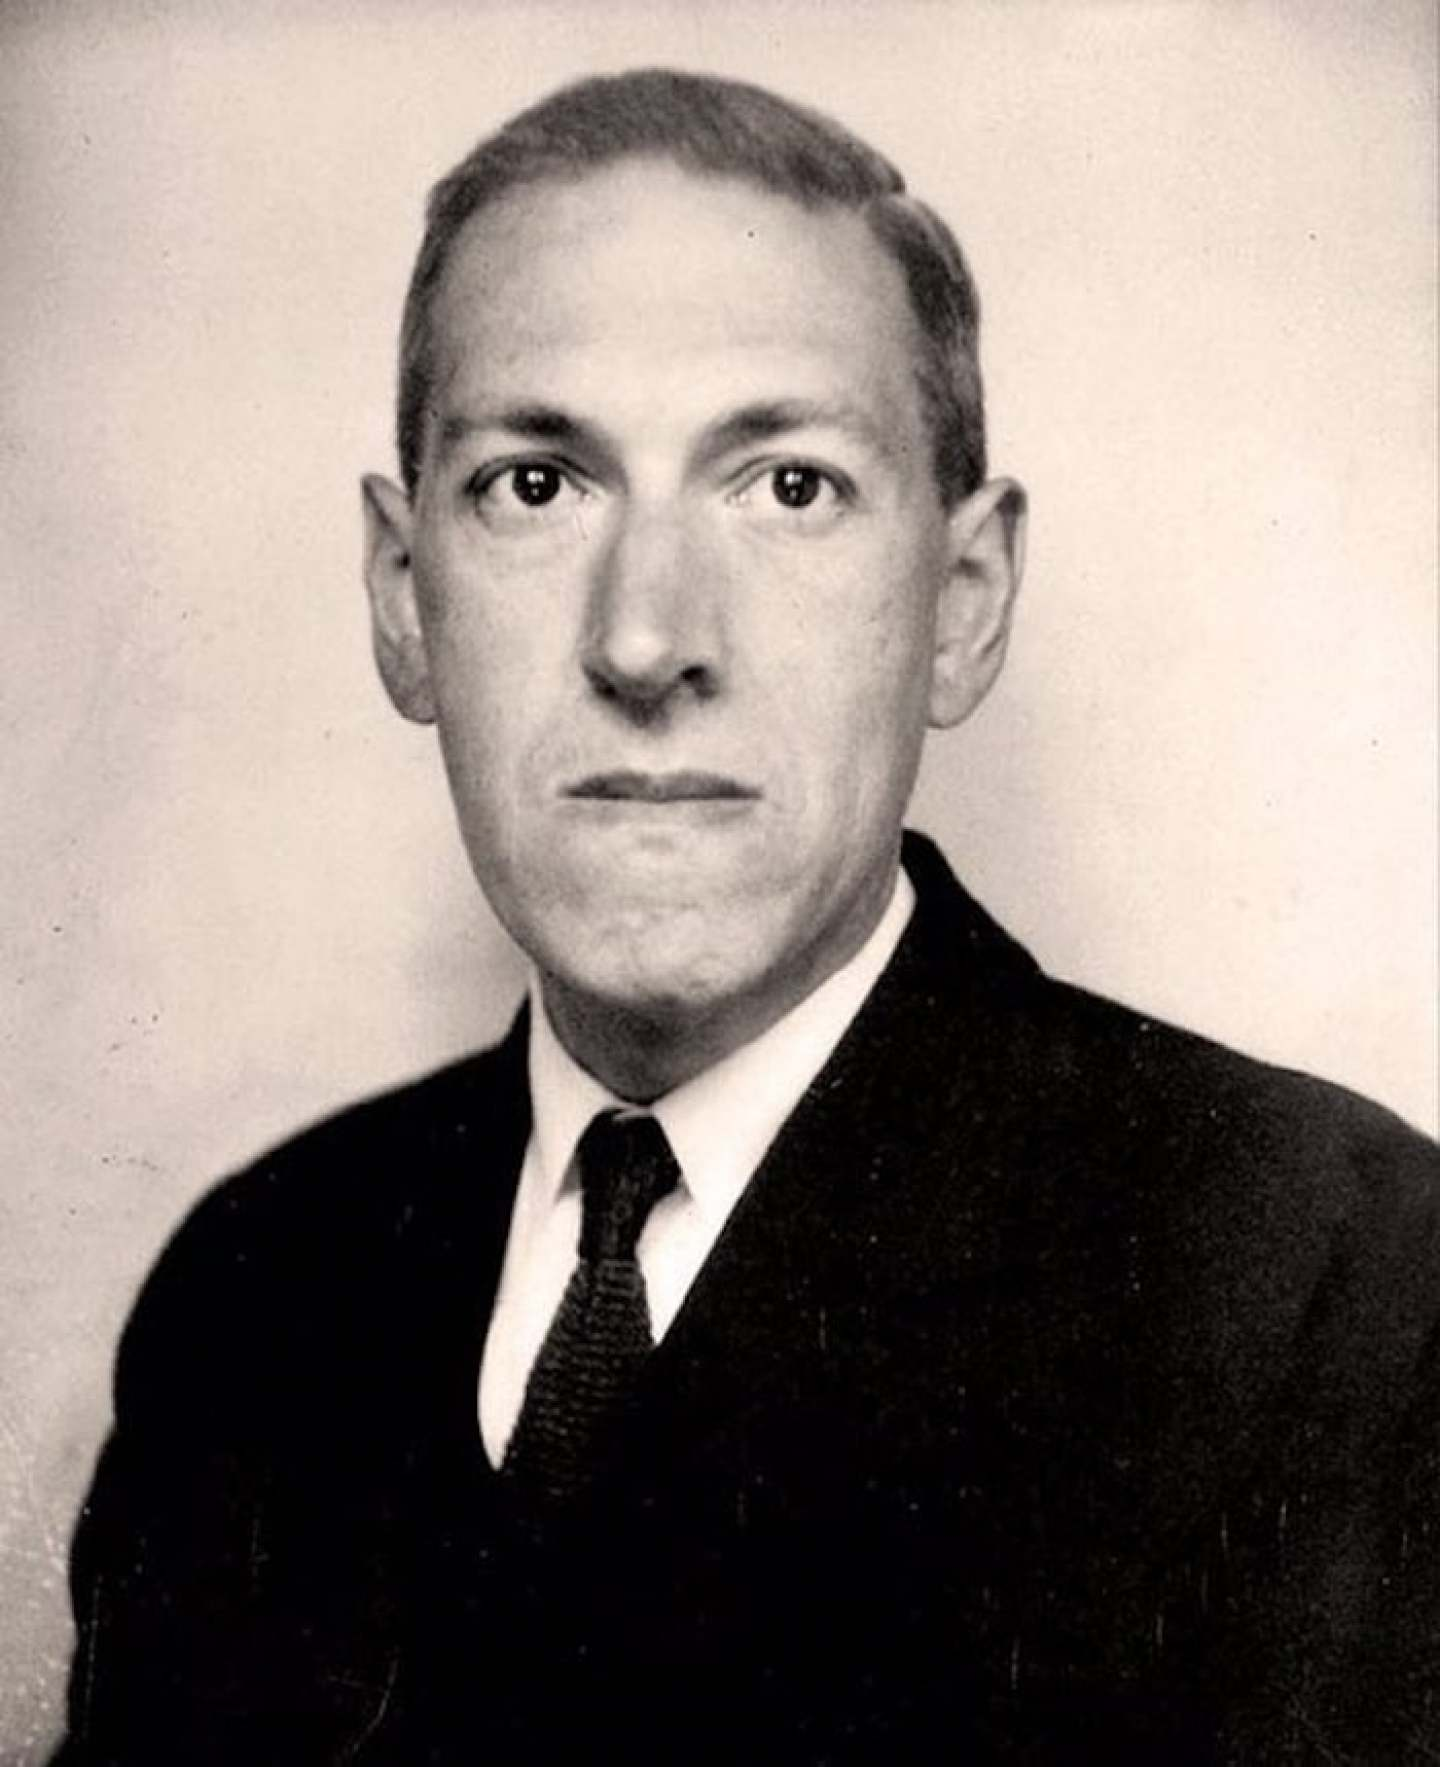 h-p-lovecraft-photo